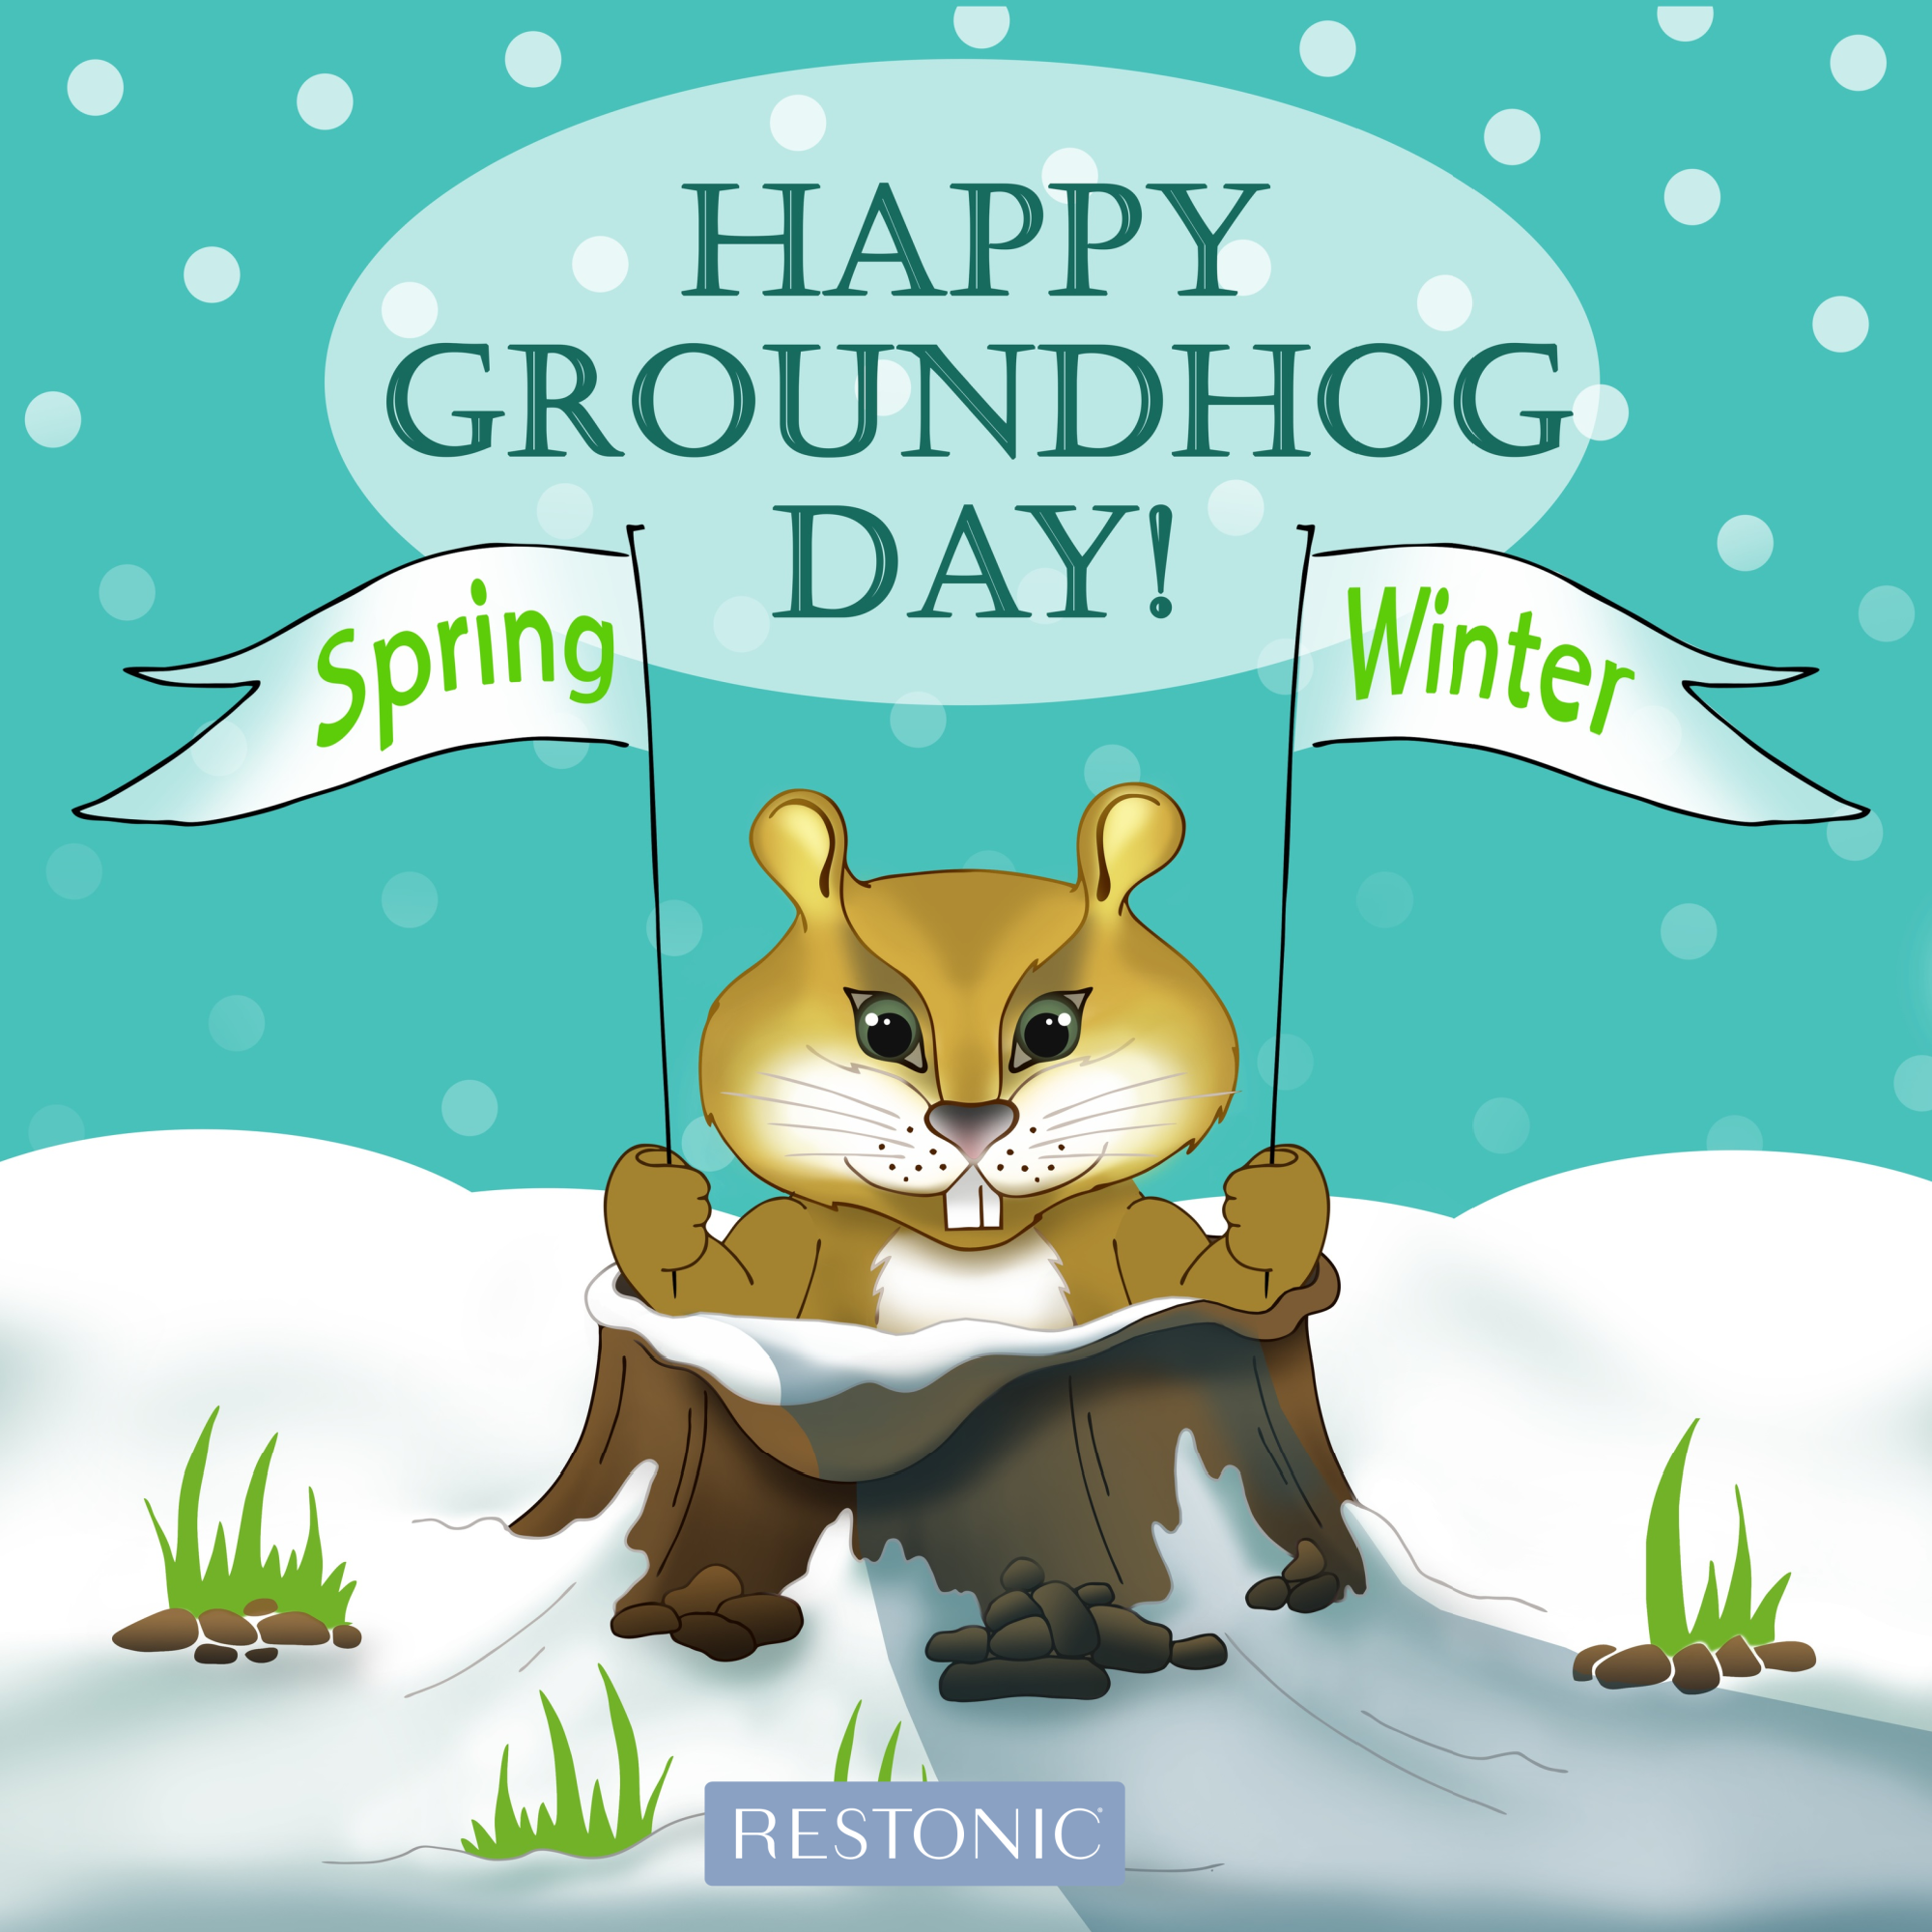 Groundhog Day – Will an Earlier Spring Mean Better Sleep for Us?